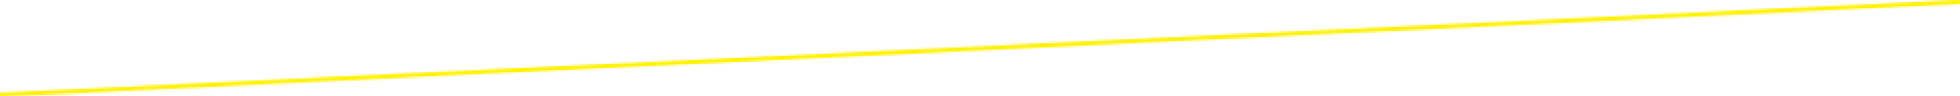 Angled_Line-Yellow up.png